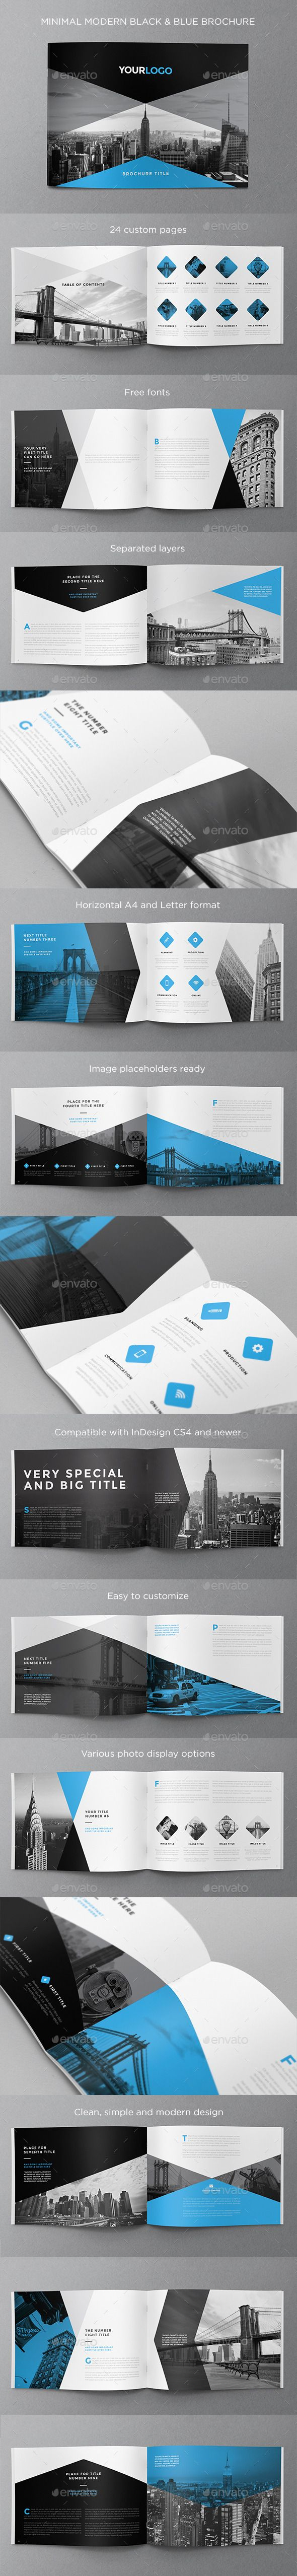 Minimal Modern Black & Blue Brochure Template #design Download: http://graphicriver.net/item/minimal-modern-black-blue-brochure/11663356?ref=ksioks